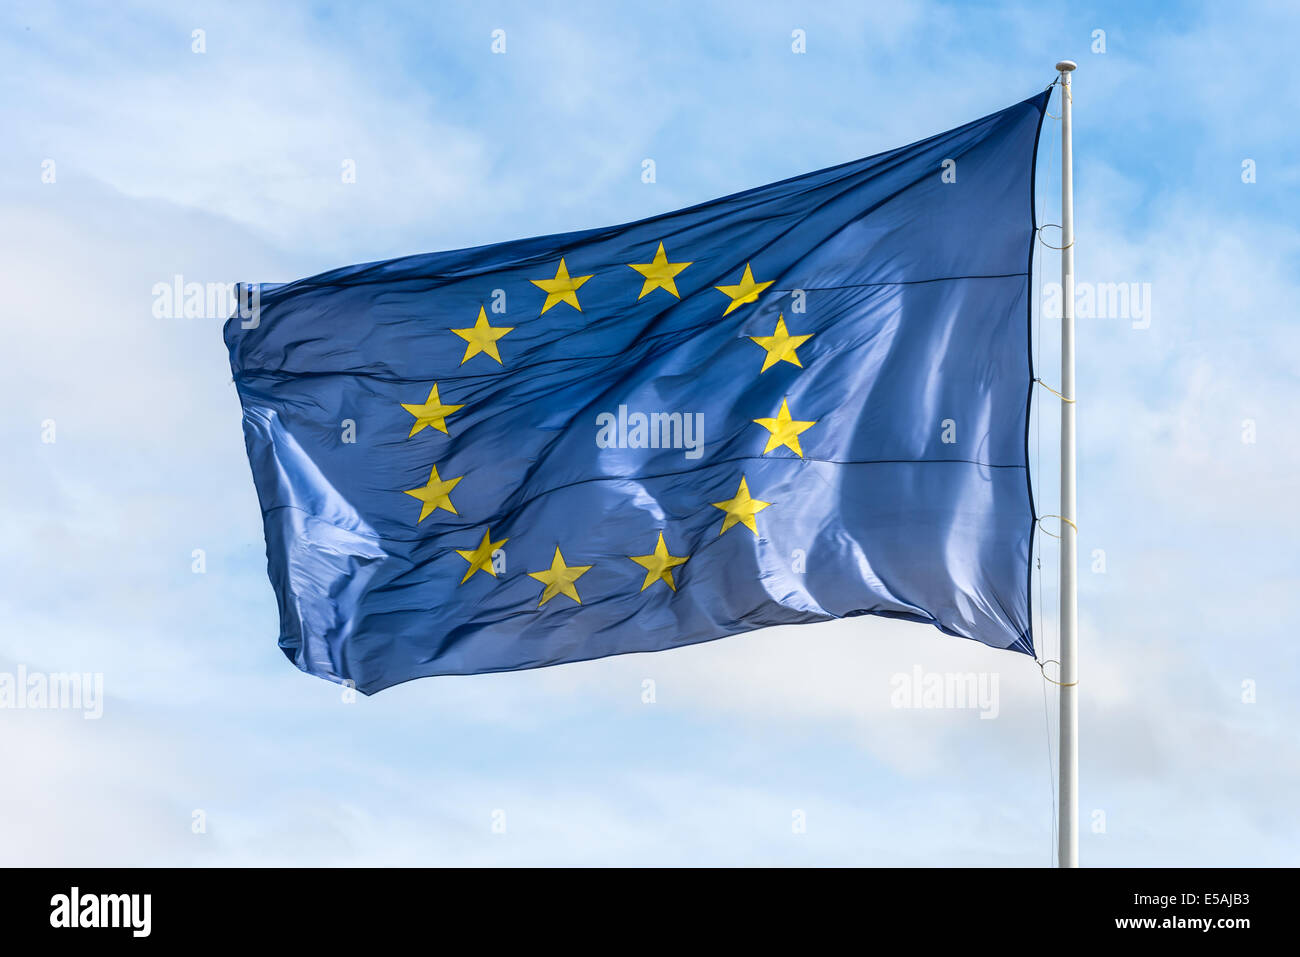 Flag of the European union waving in the wind - Stock Image